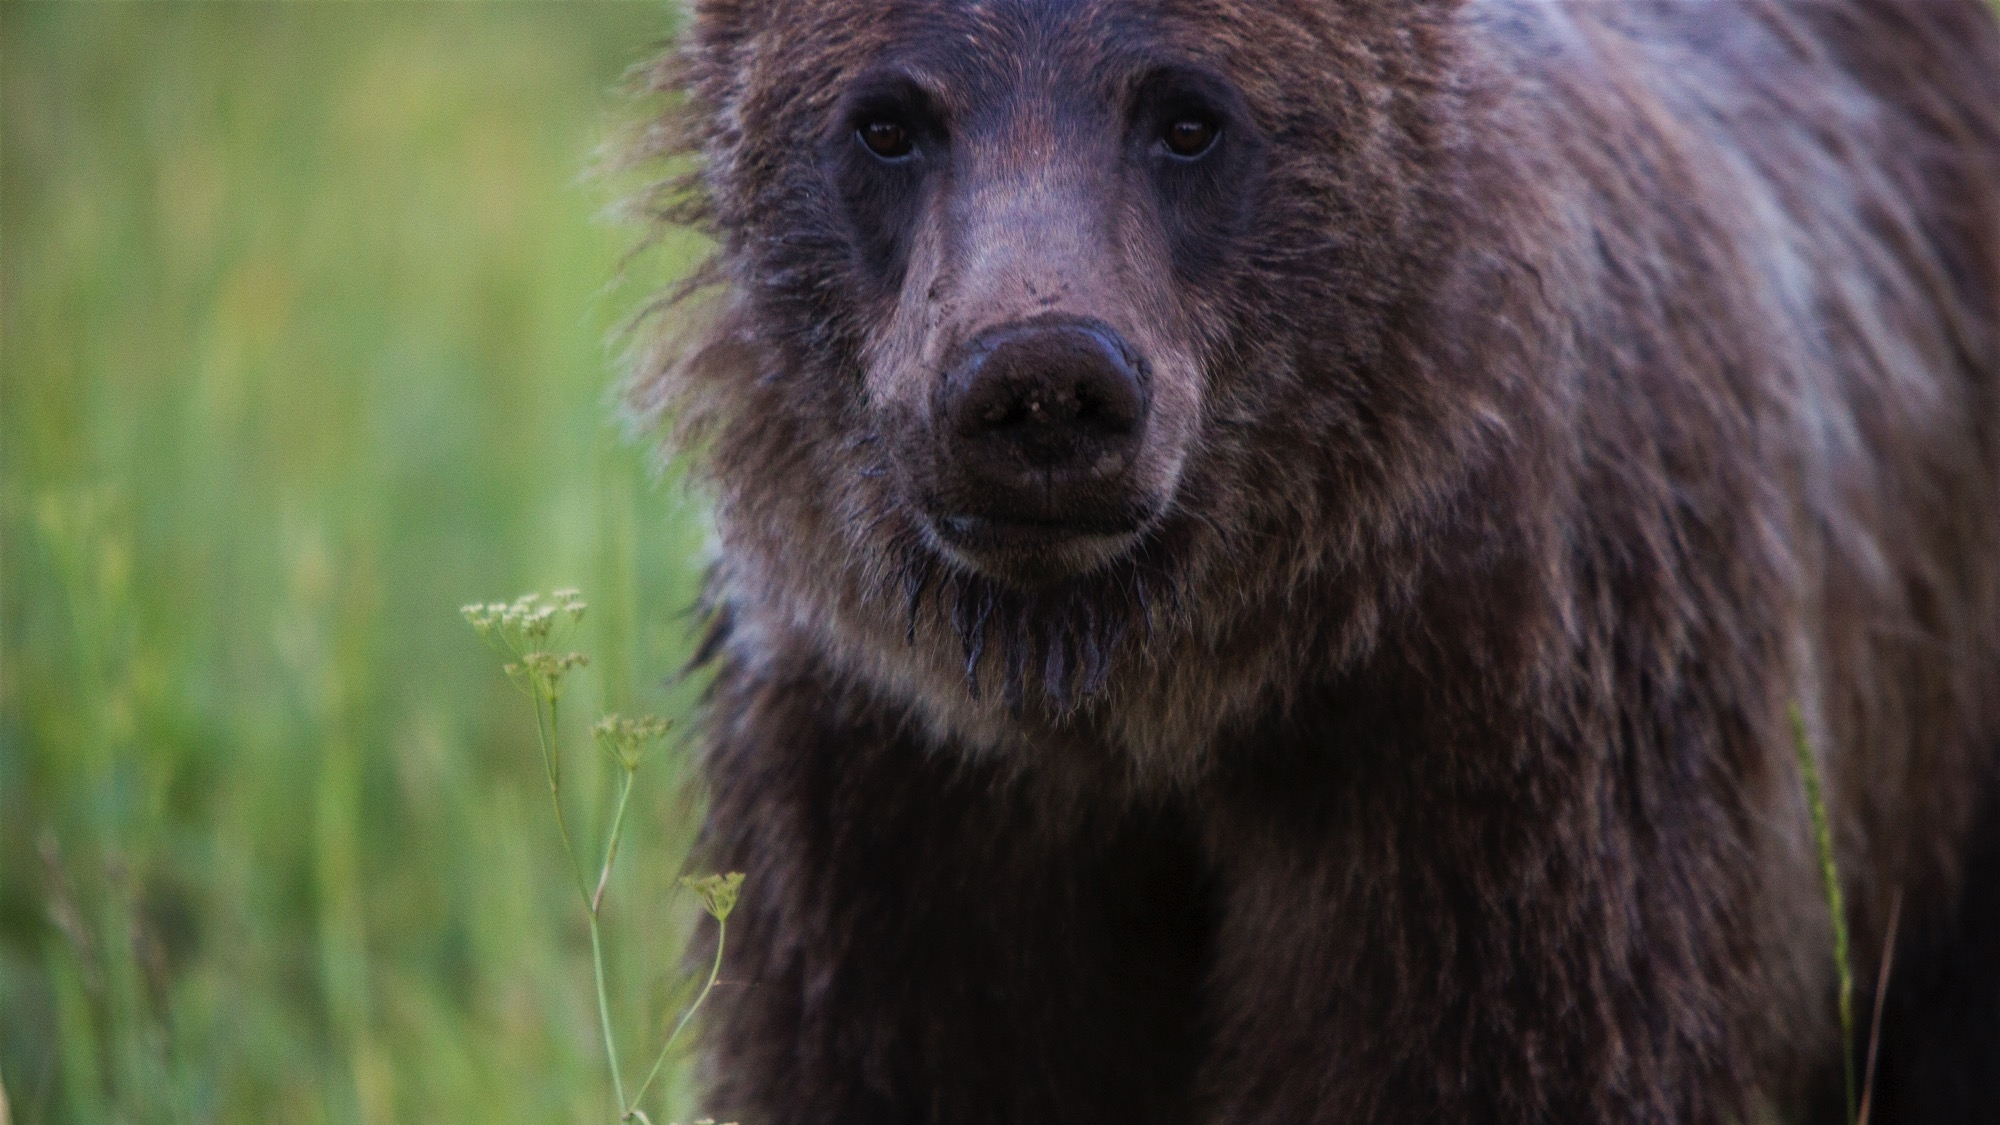 A young grizzly bear forages in the wildflowers near Pacific Creek